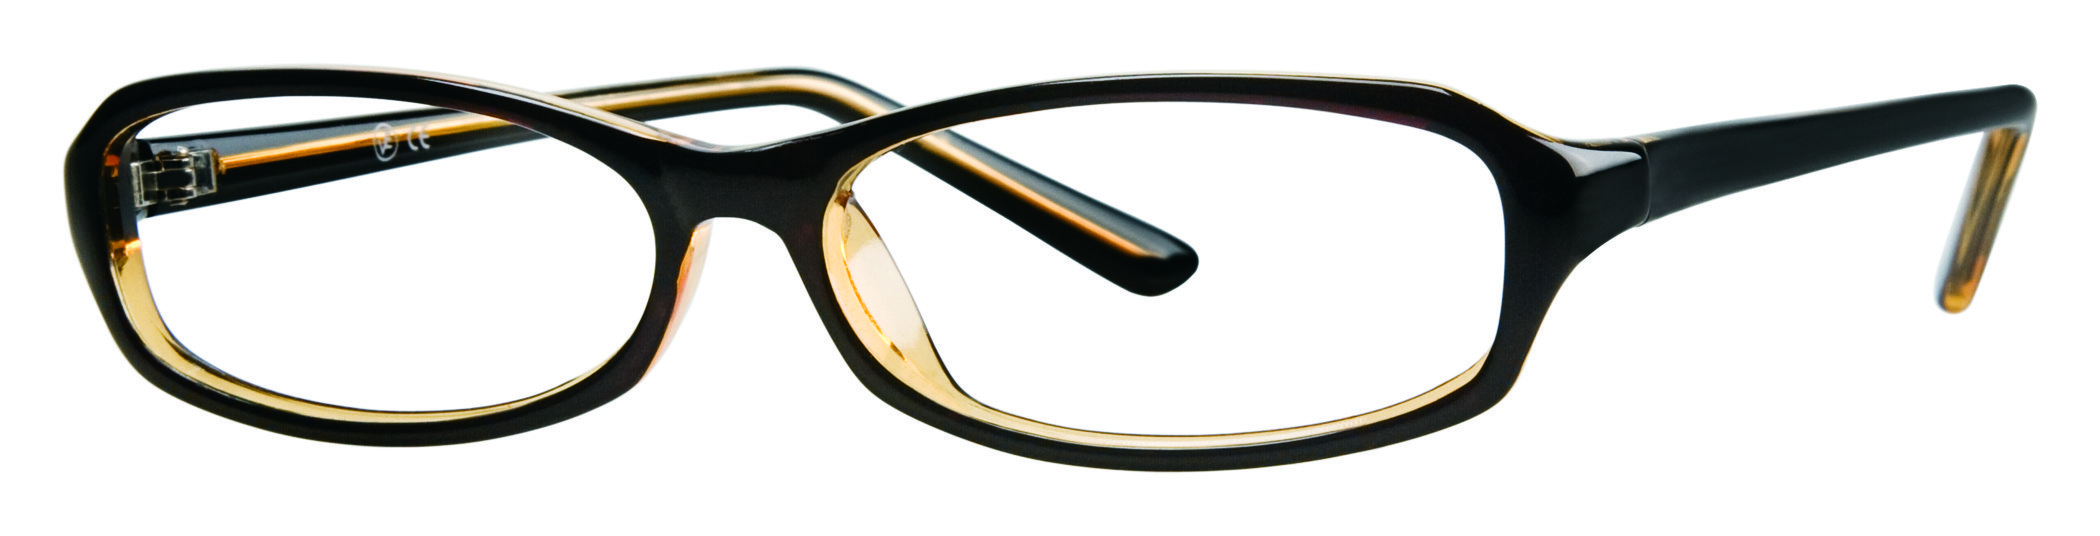 Vivid Eyewear - Soho 88 Eyeglasses Replacement Lens Express